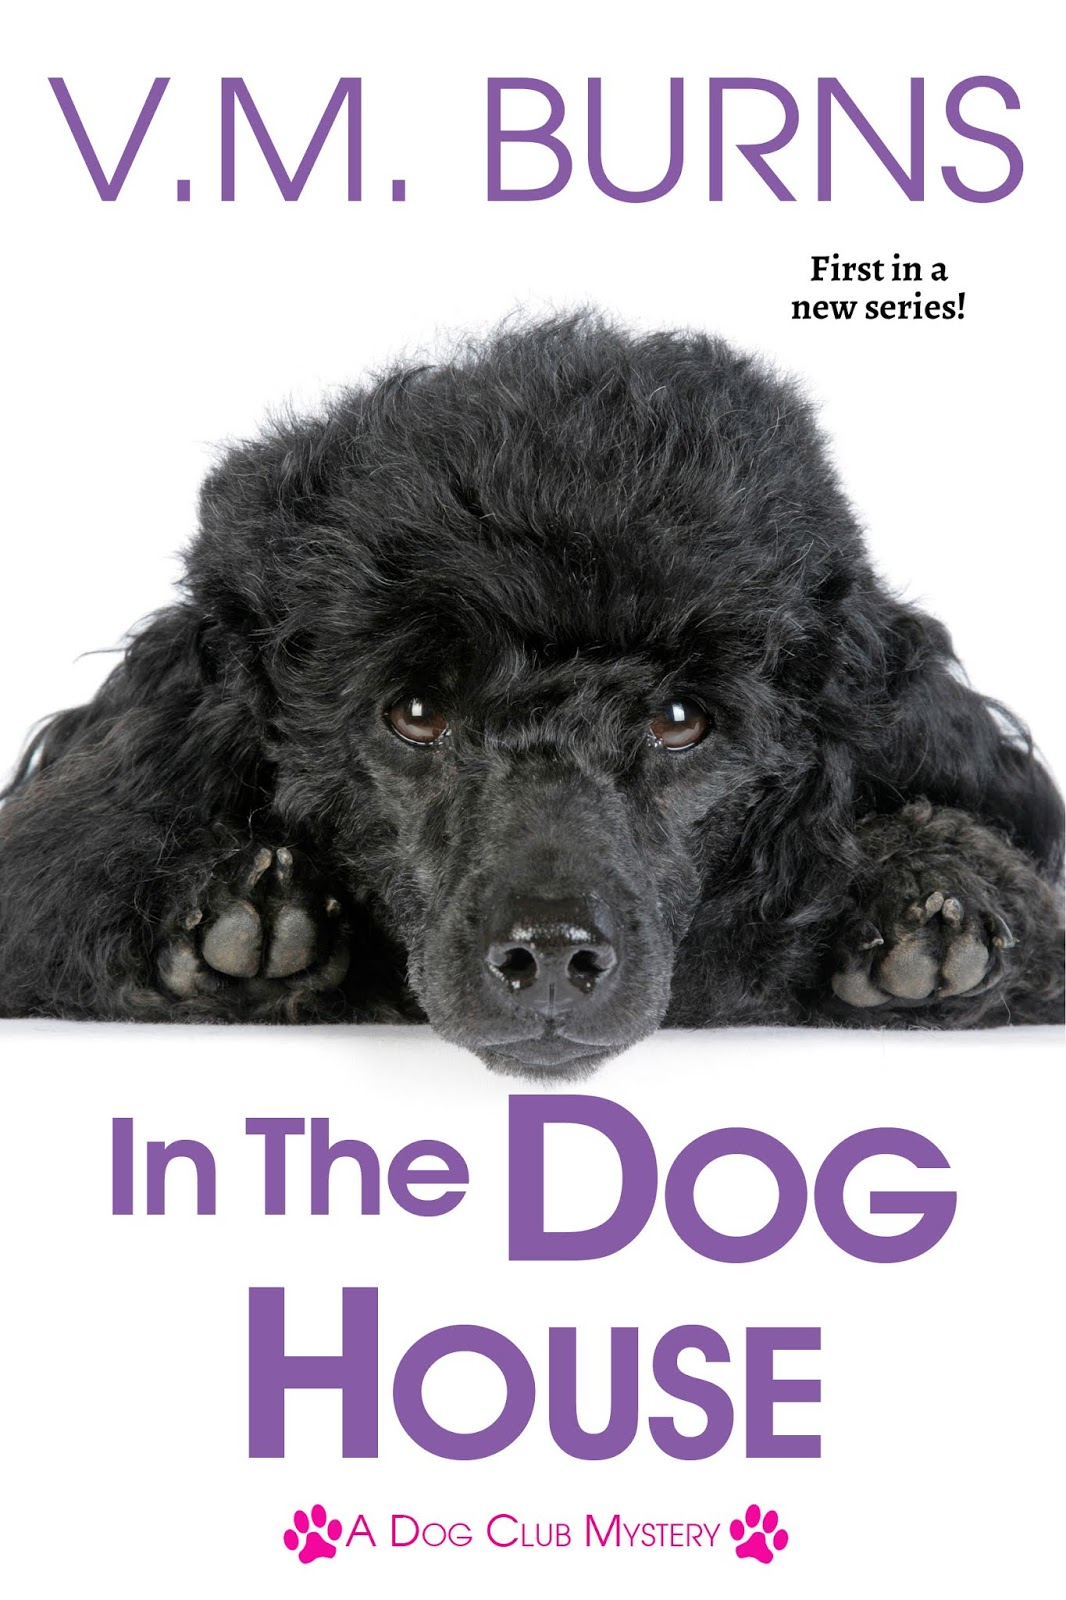 Killer Characters: Meet Lilly and Aggie - IN THE DOG HOUSE